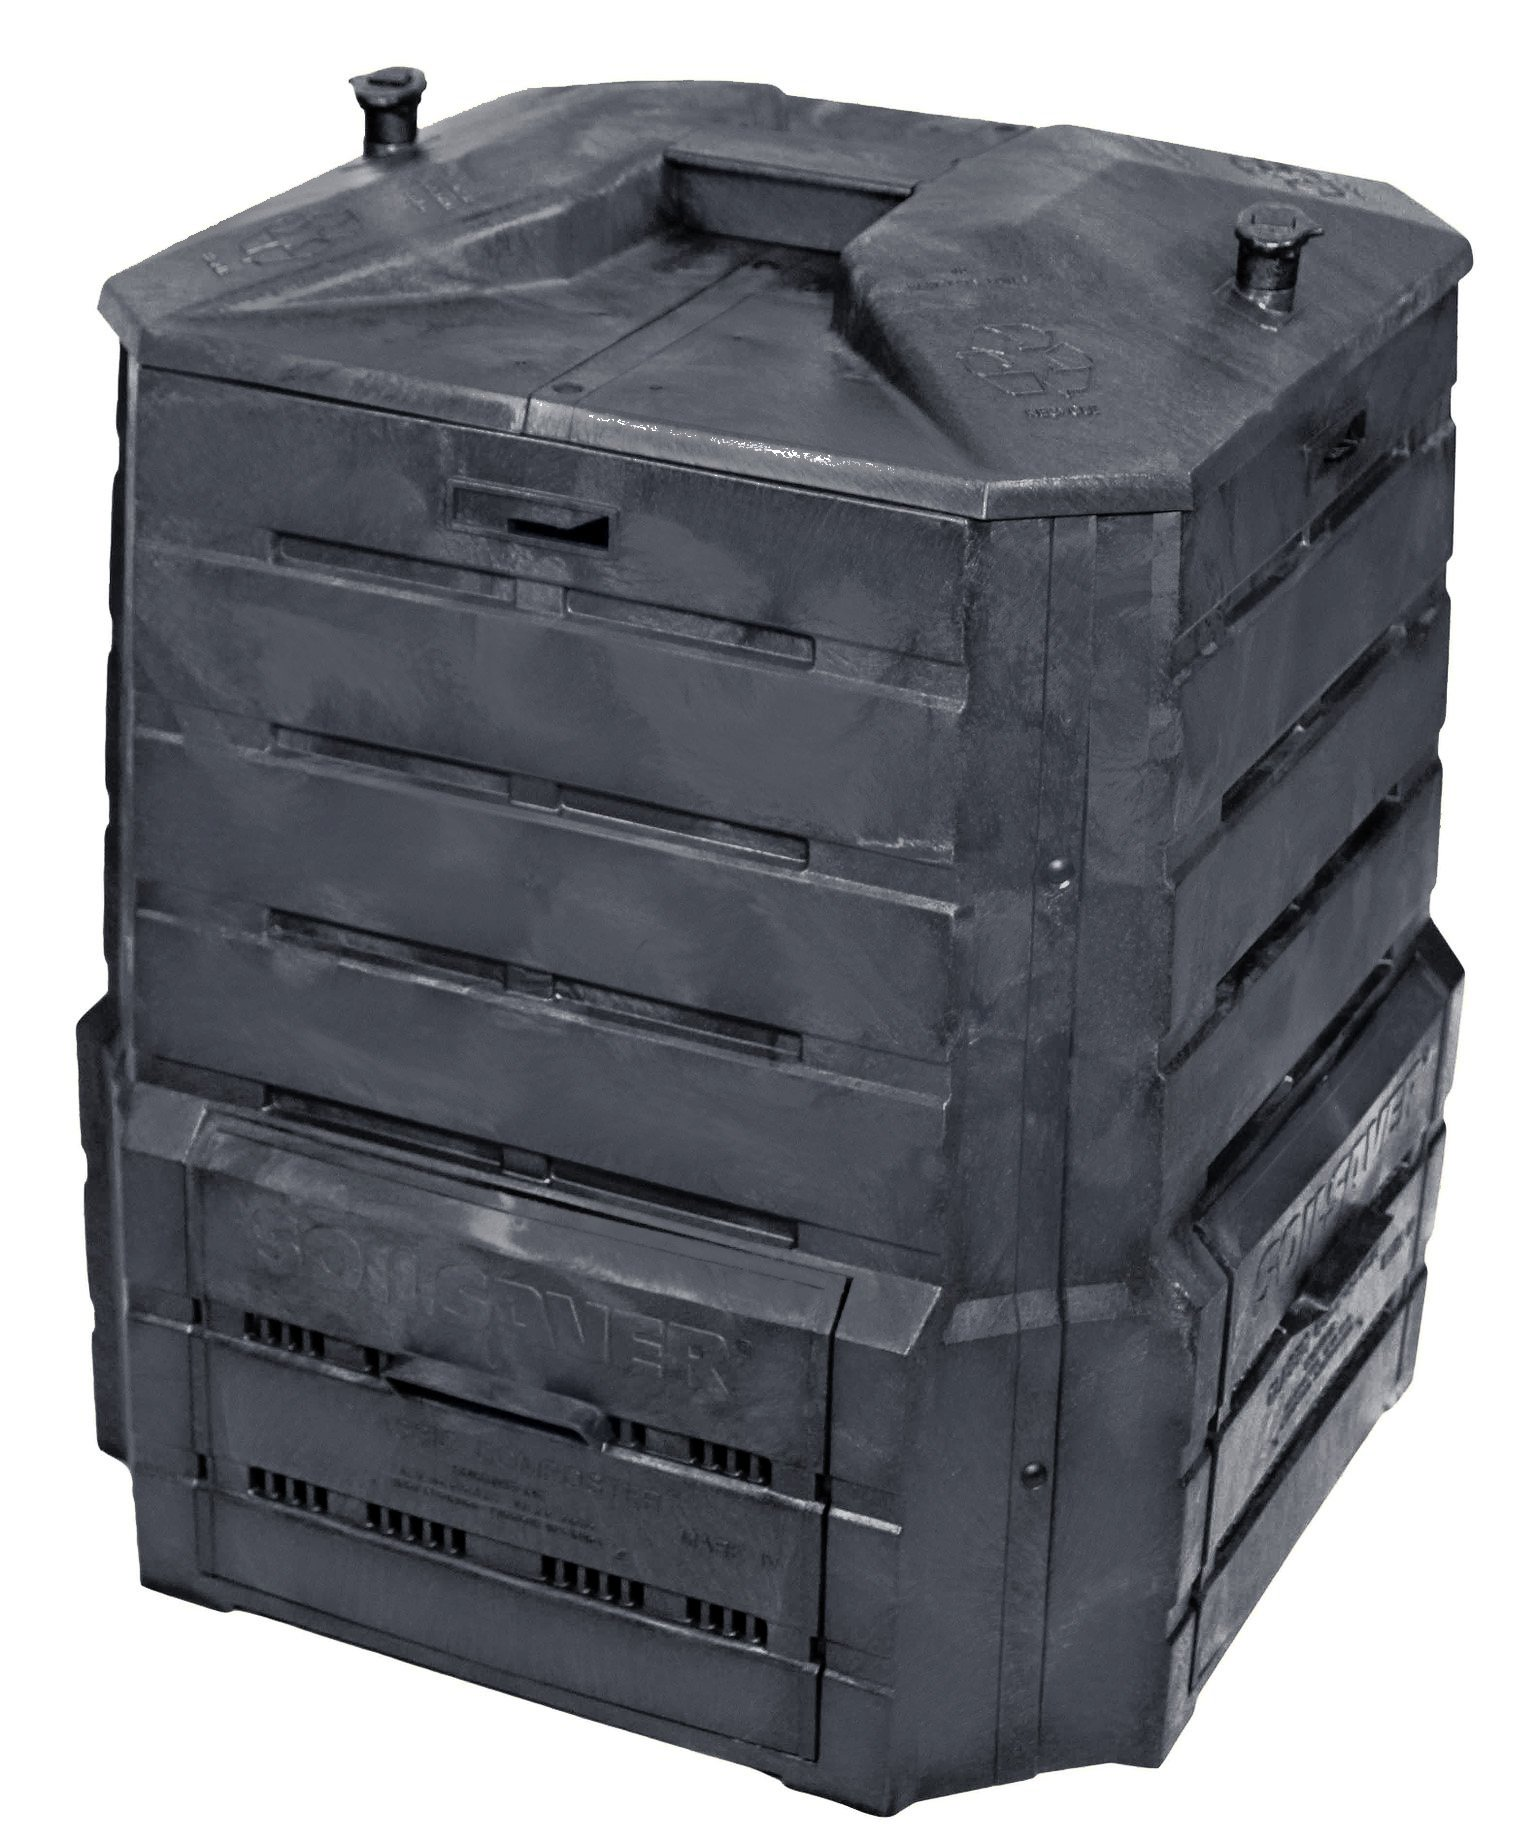 Algreen Products Soil Saver Classic Compost bin product image